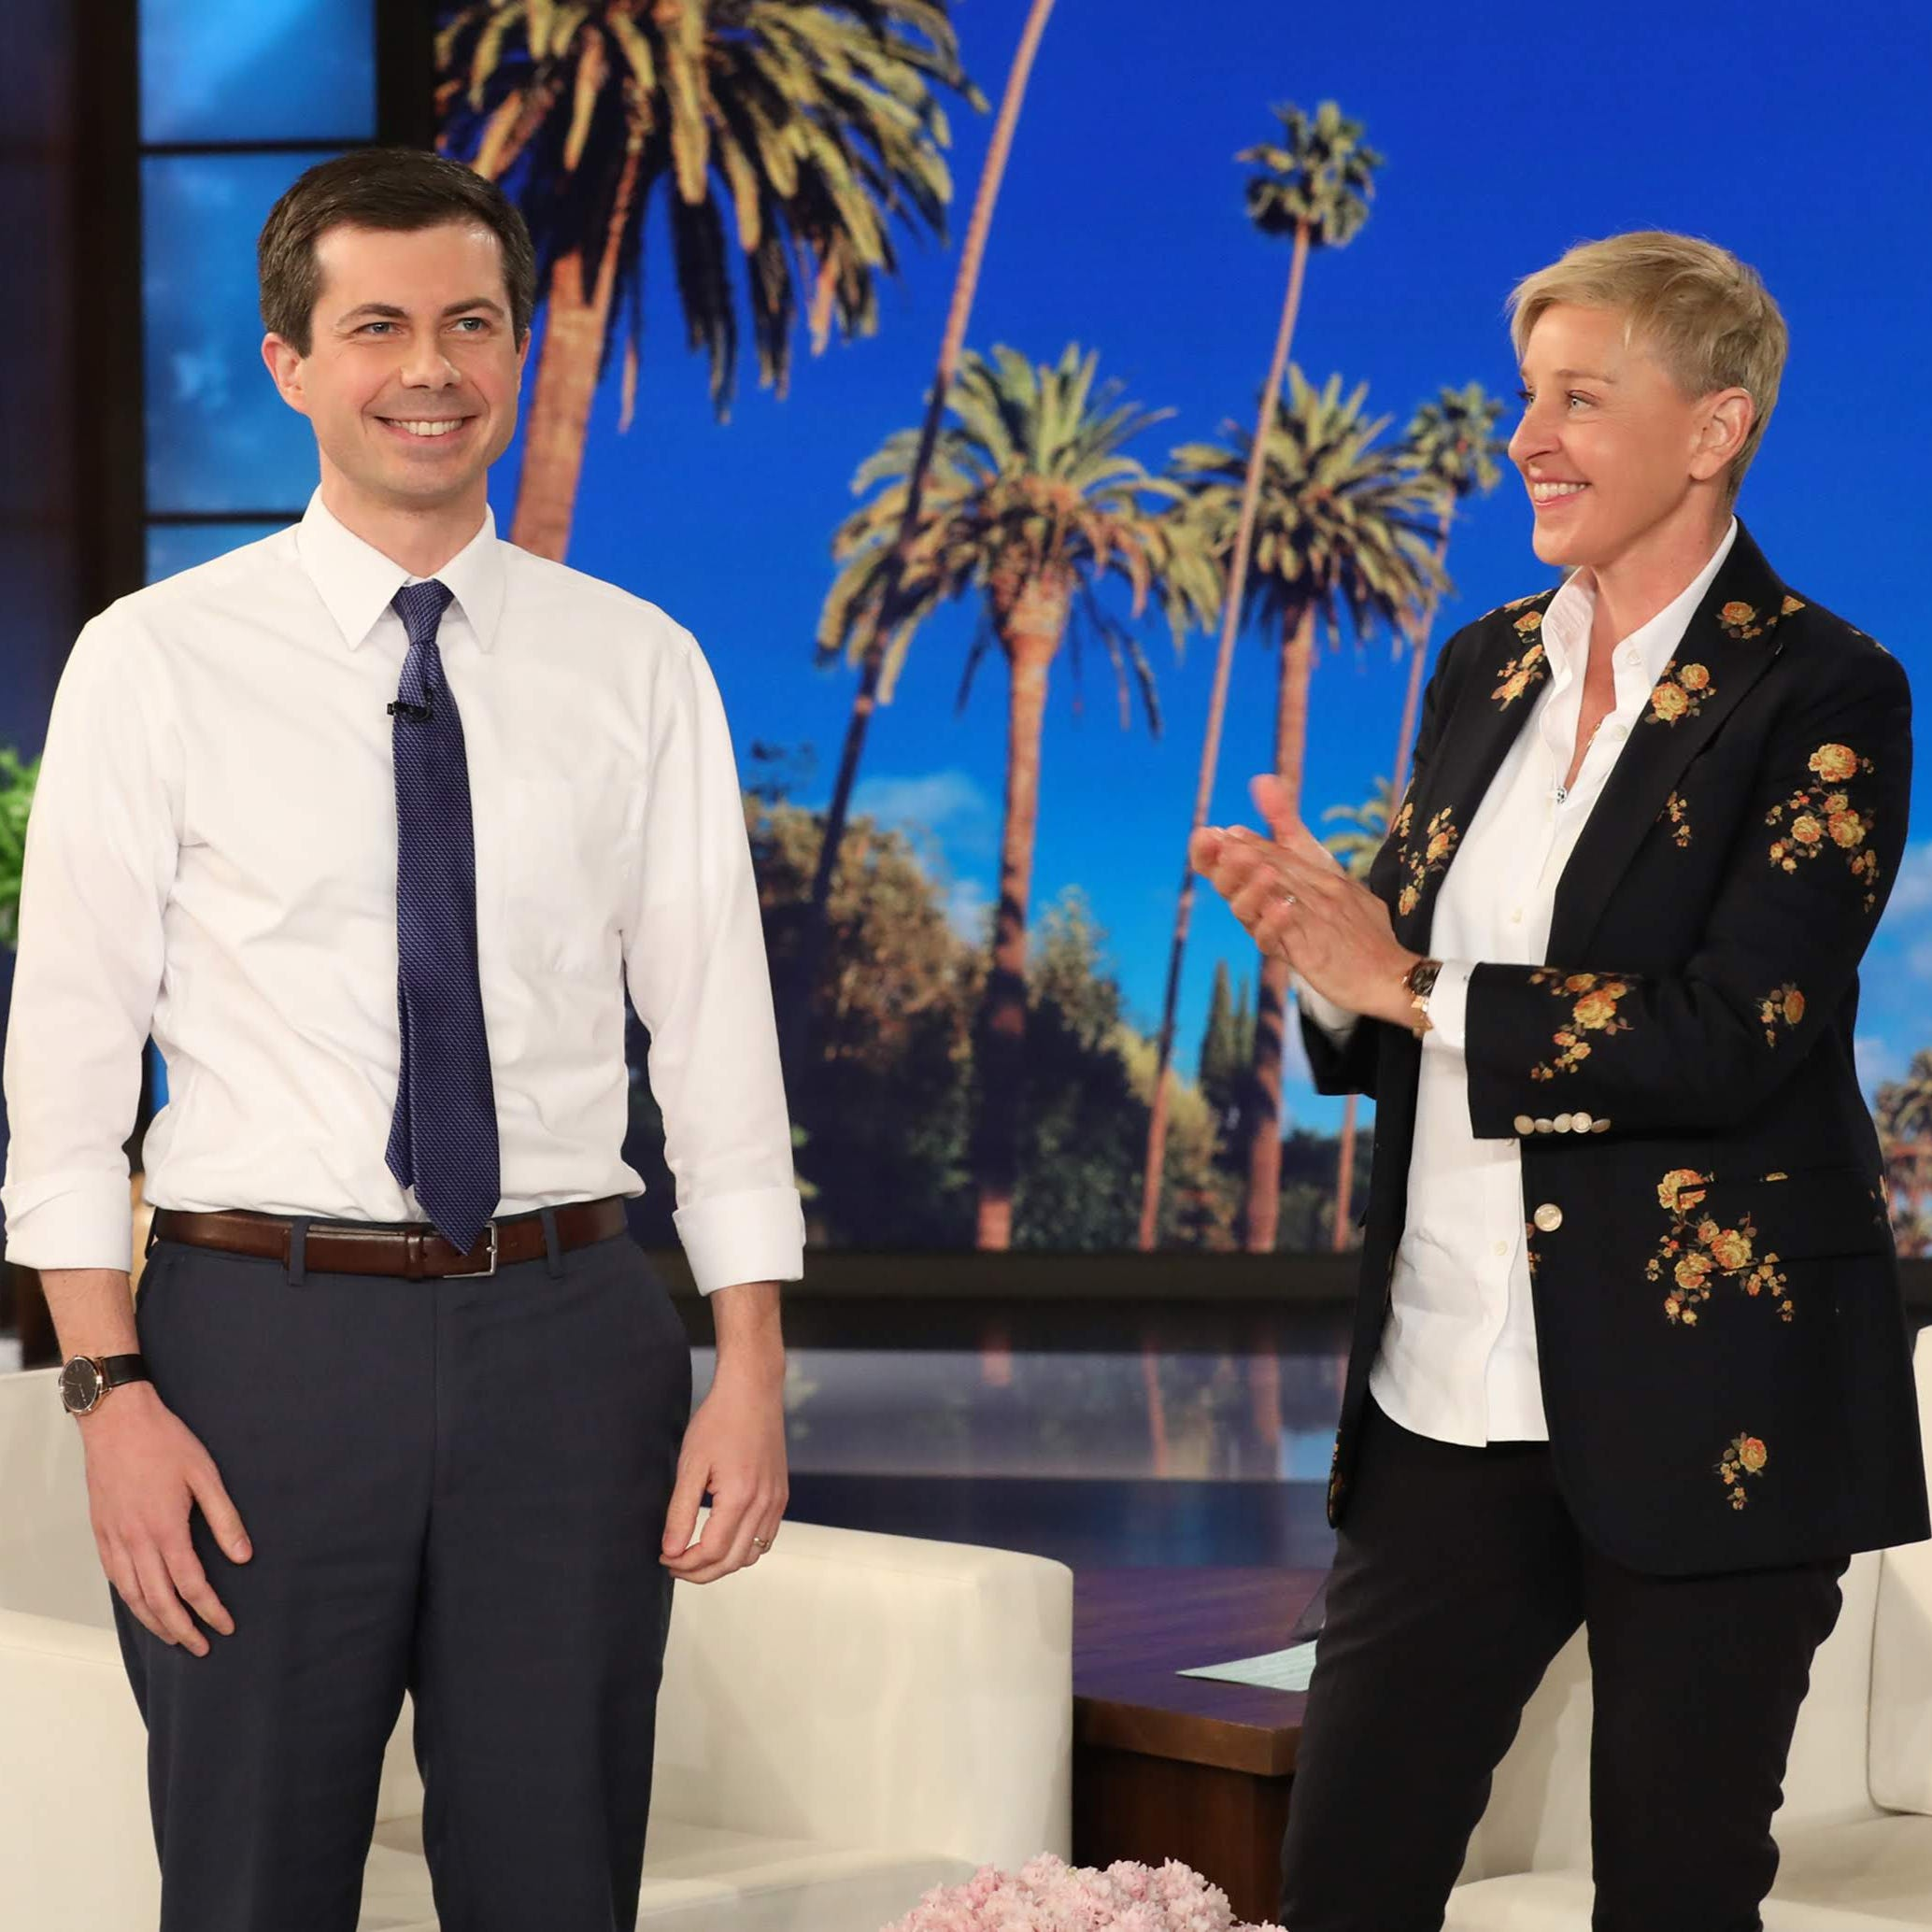 Pete Buttigieg tells Ellen DeGeneres that candidacy announcement can wait